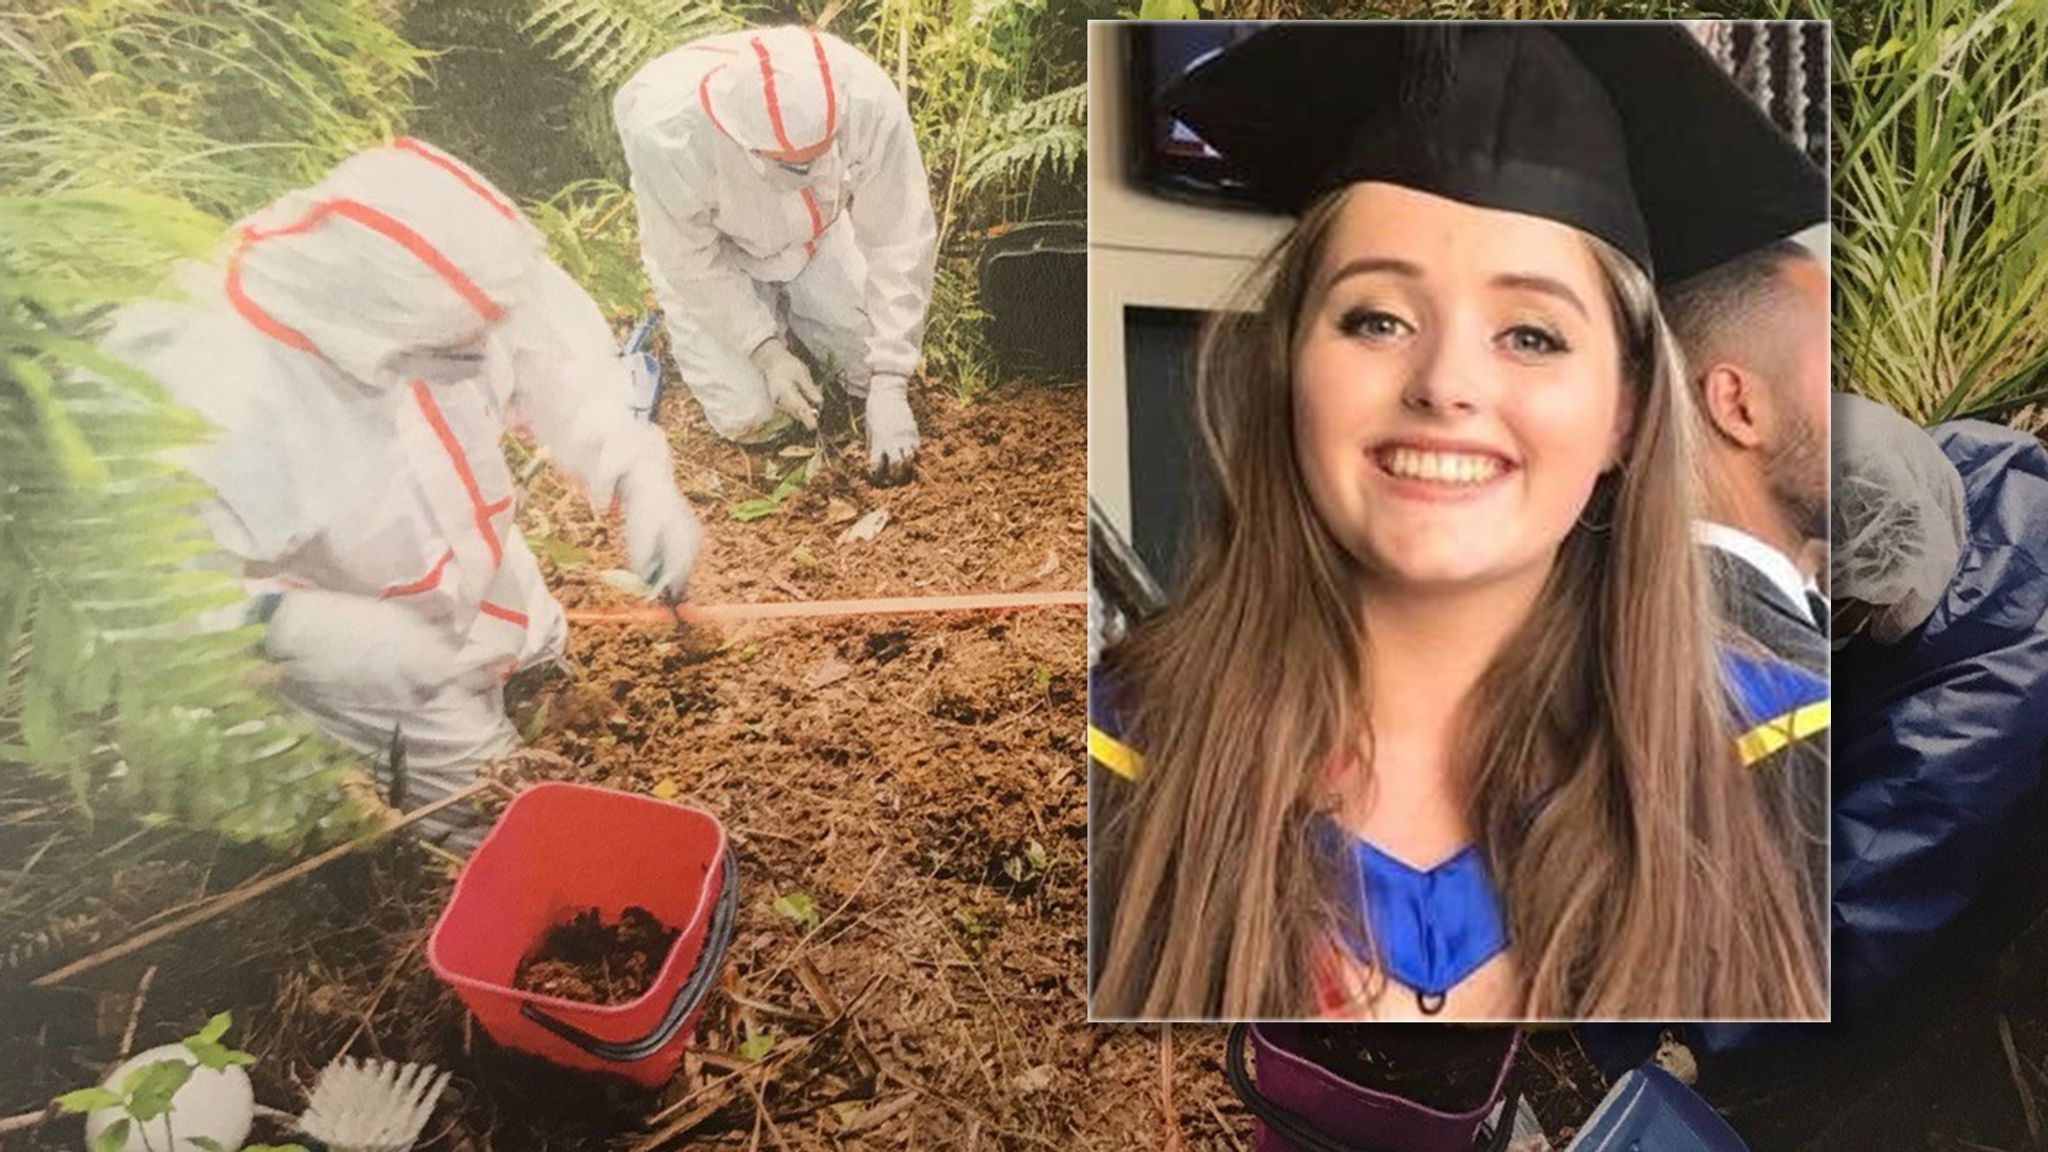 Grace Millane murder accused: Putting body in suitcase 'didn't seem right'